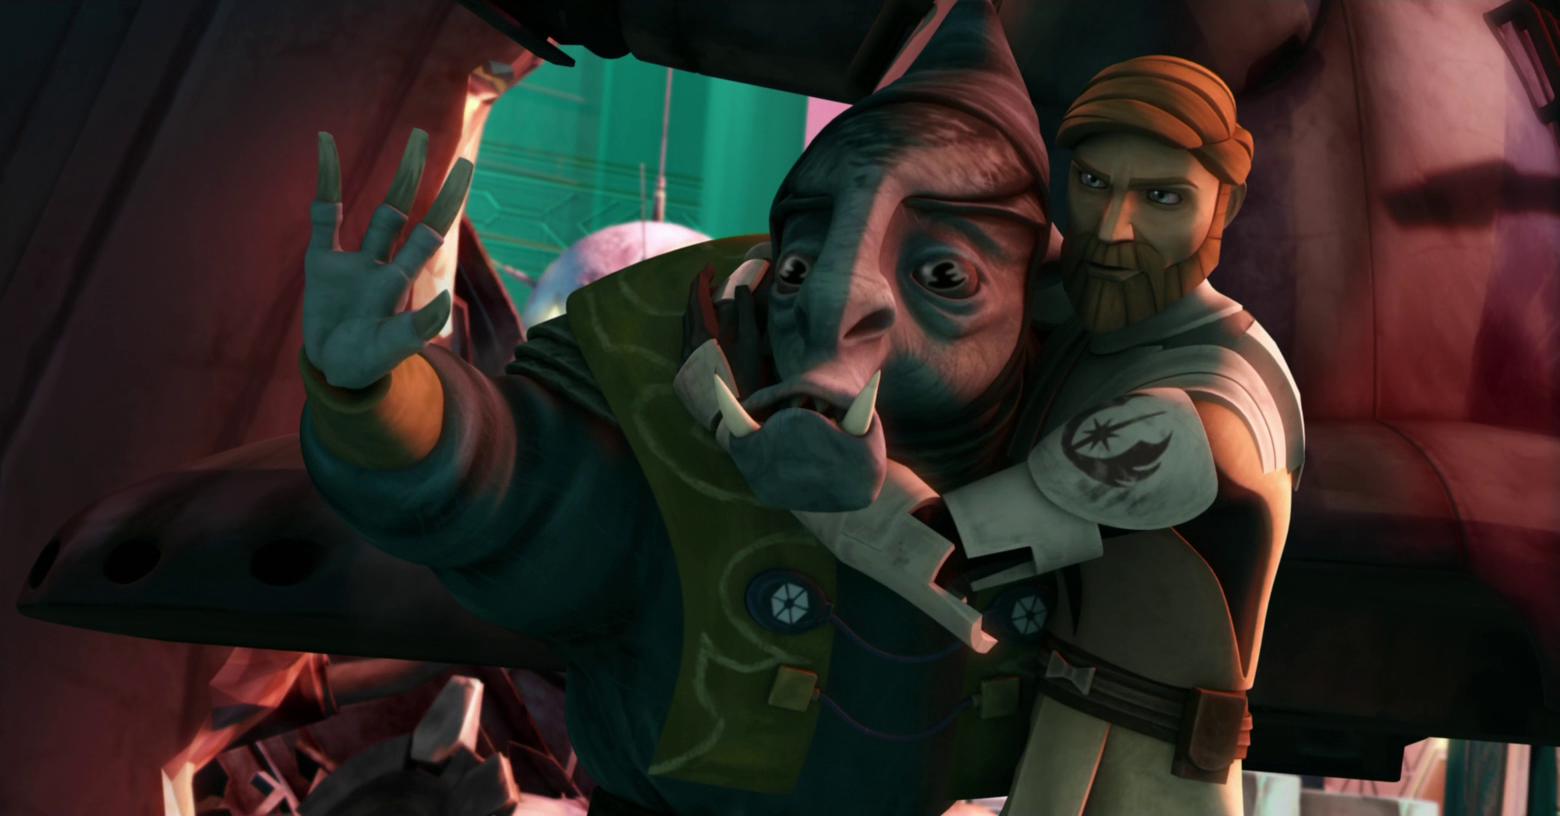 Loathsom was shamed by his defeat and capture at the hands of Kenobi